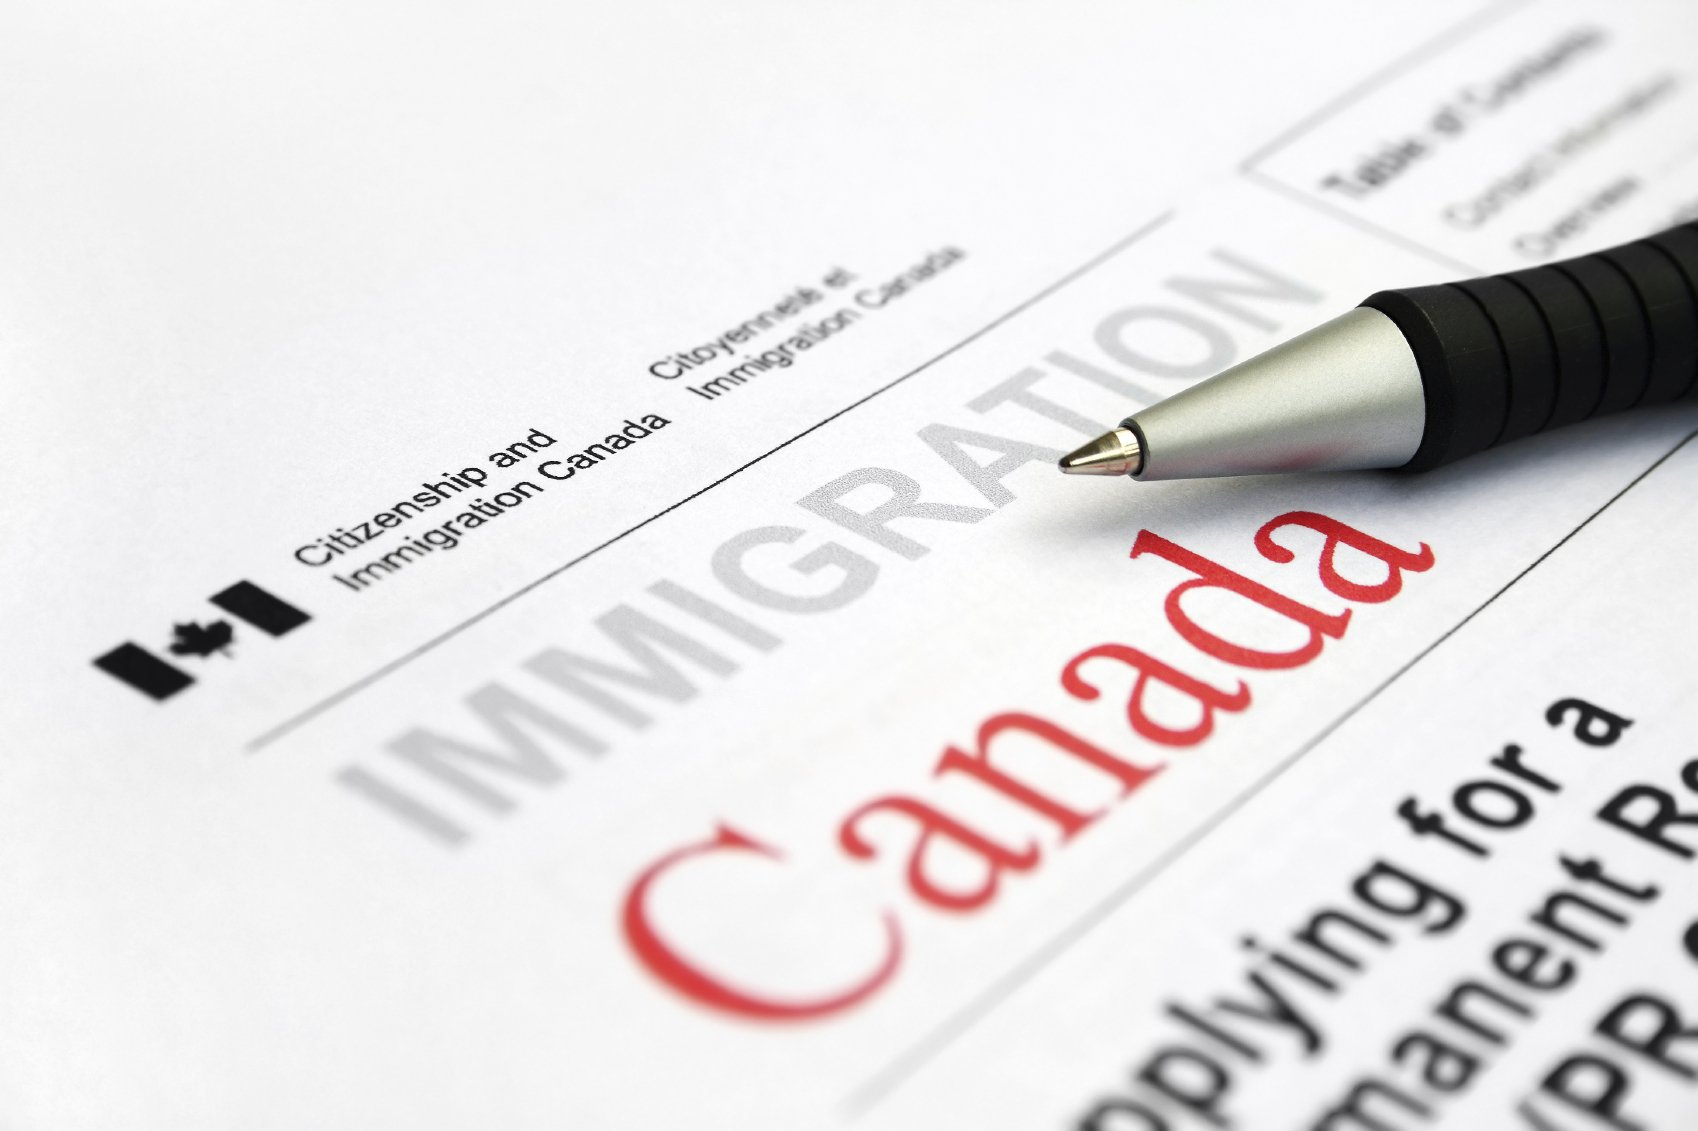 Ottawa conference to discuss Canada's immigration system